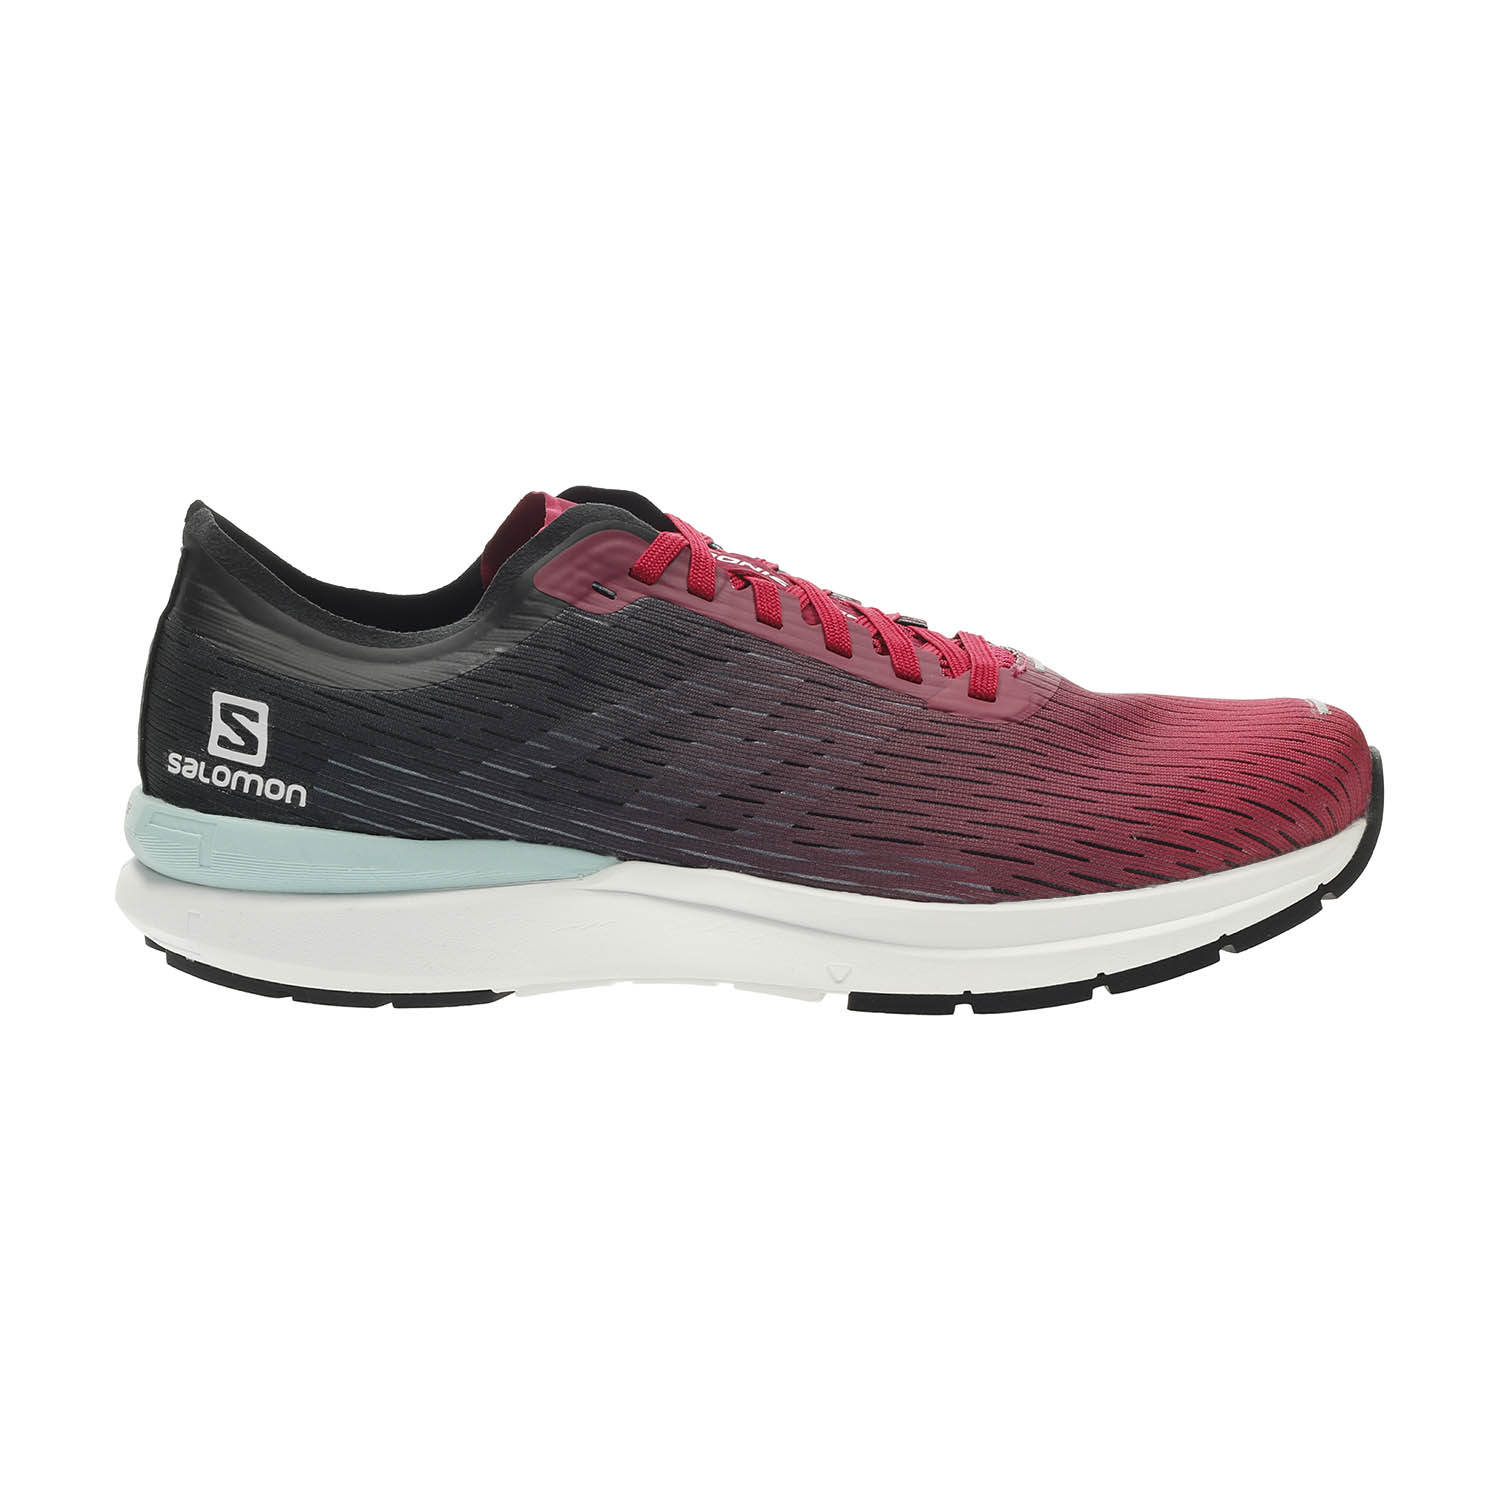 Salomon Sonic 3 Accelerate - Cerise/White/Black